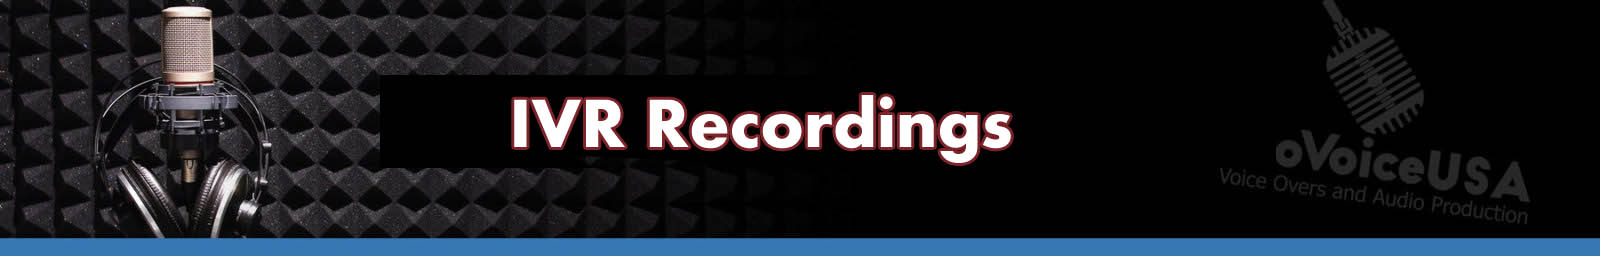 IVR Recordings | American Voice Recording Service | ProVoice USA